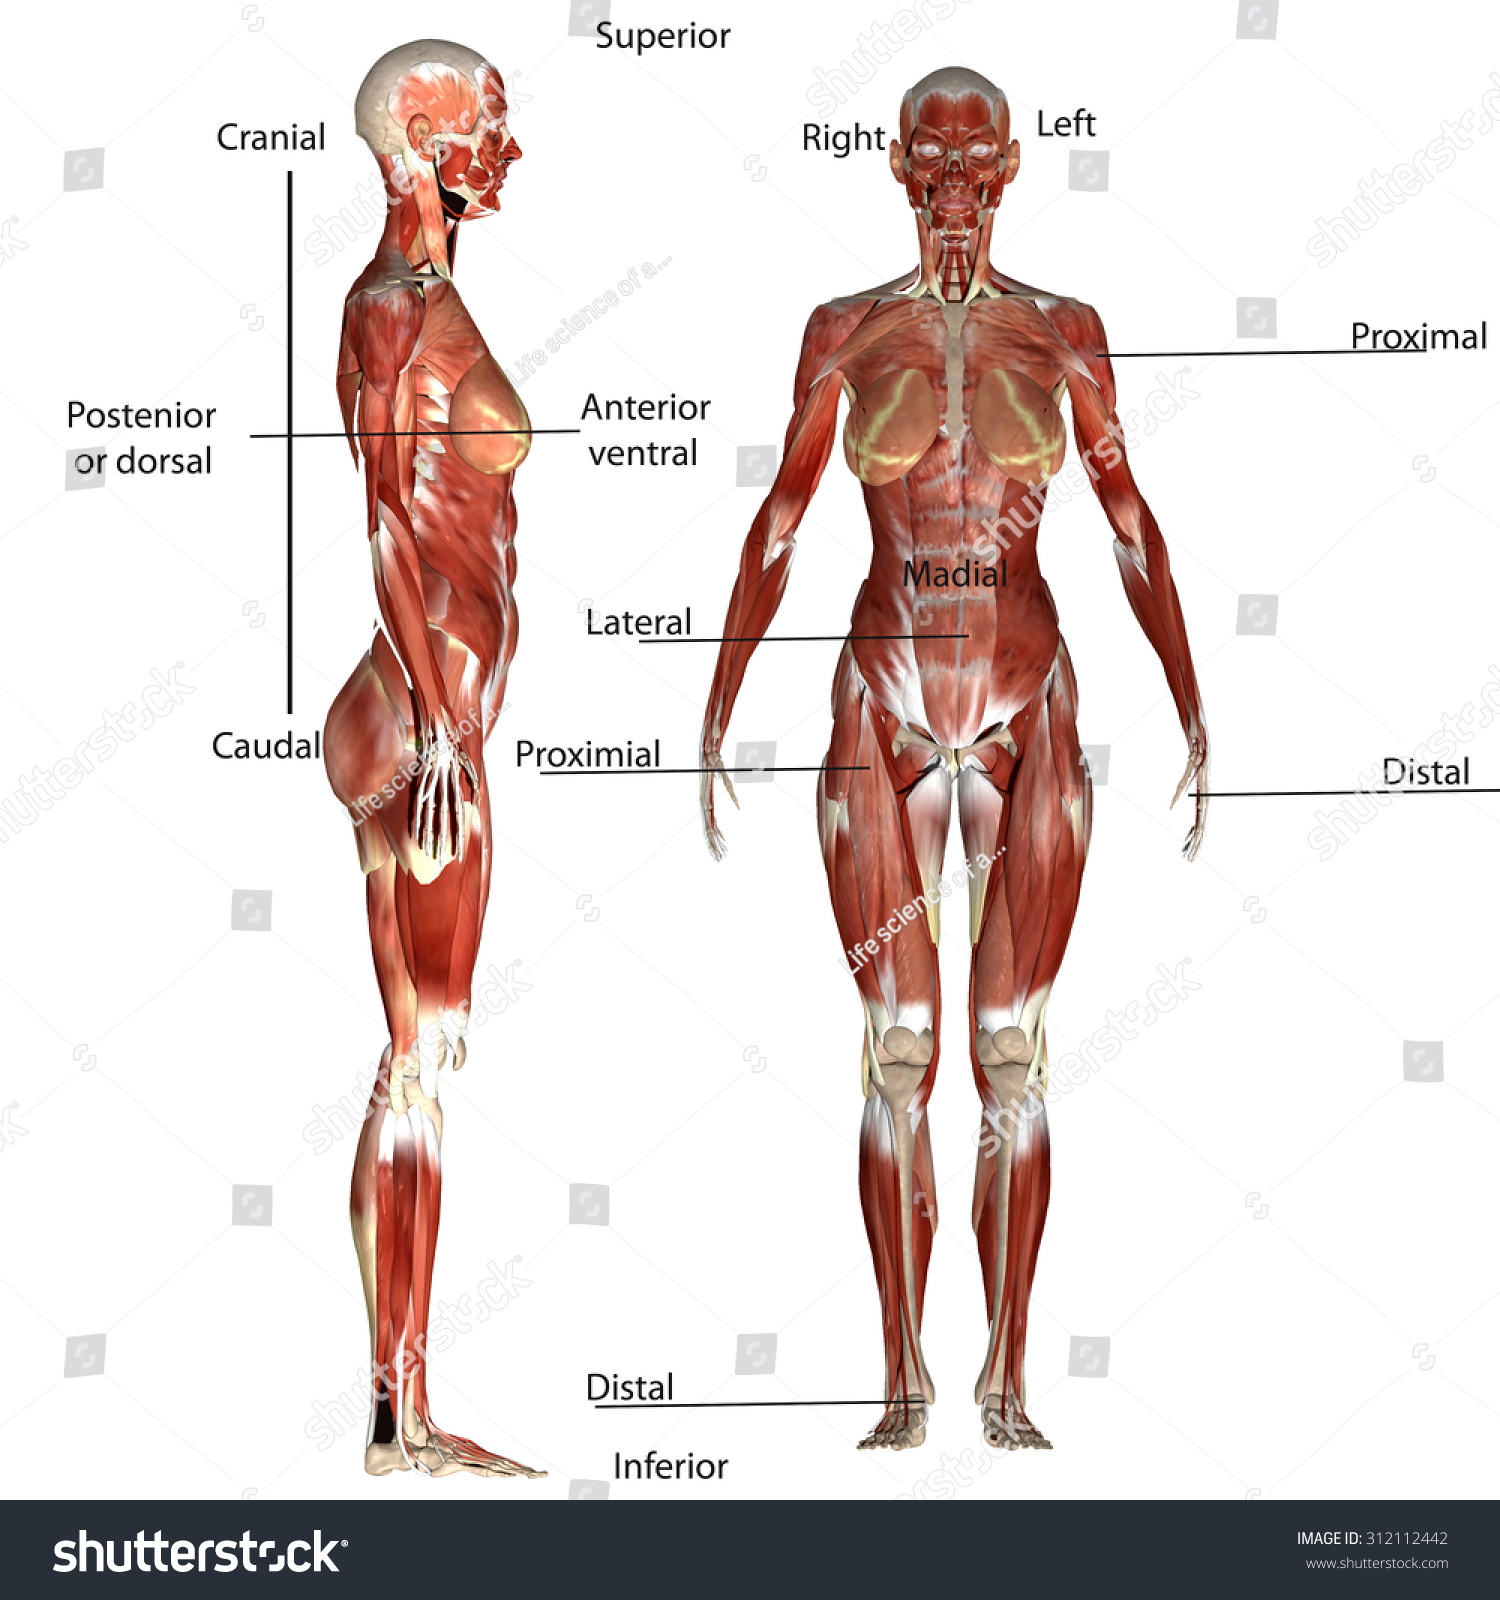 Human Body Muscles Stock Illustration 312112442 - Shutterstock